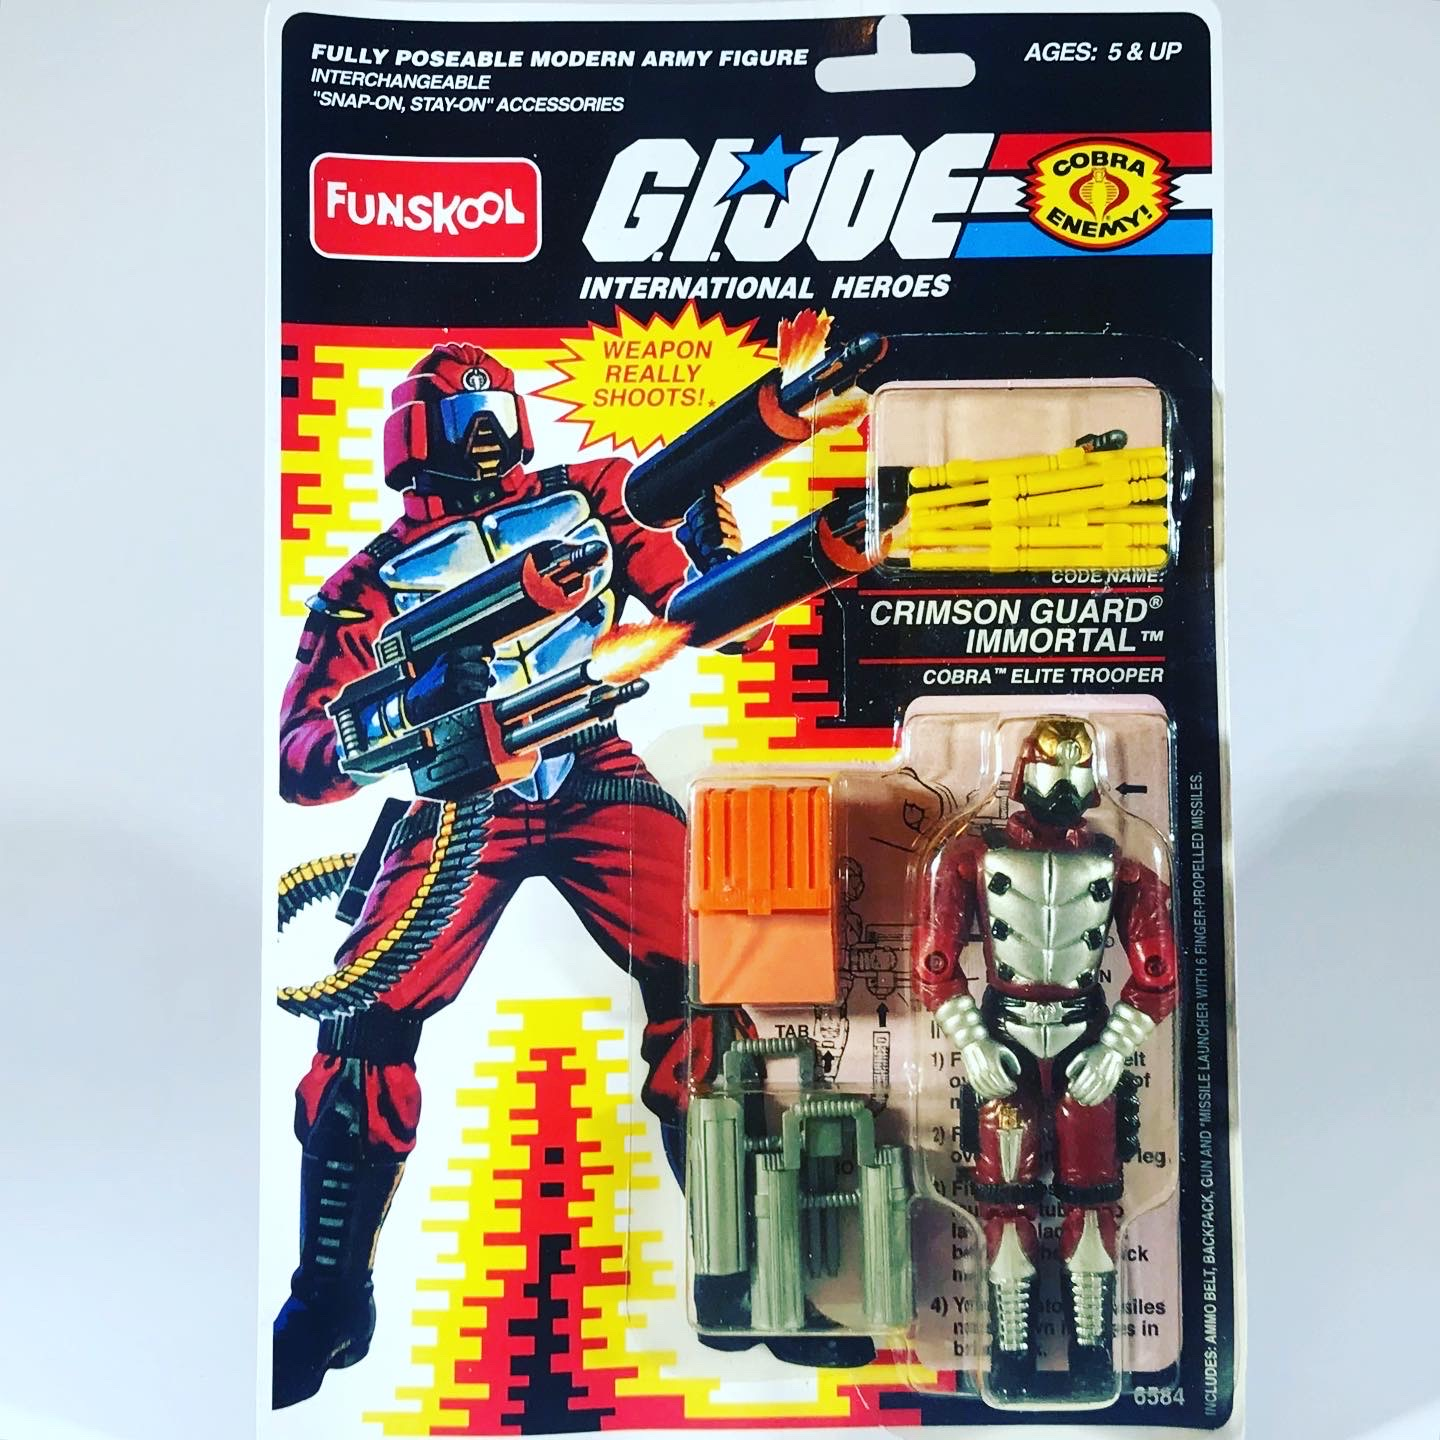 Funskool GI Joe Crimson Guard Immortal